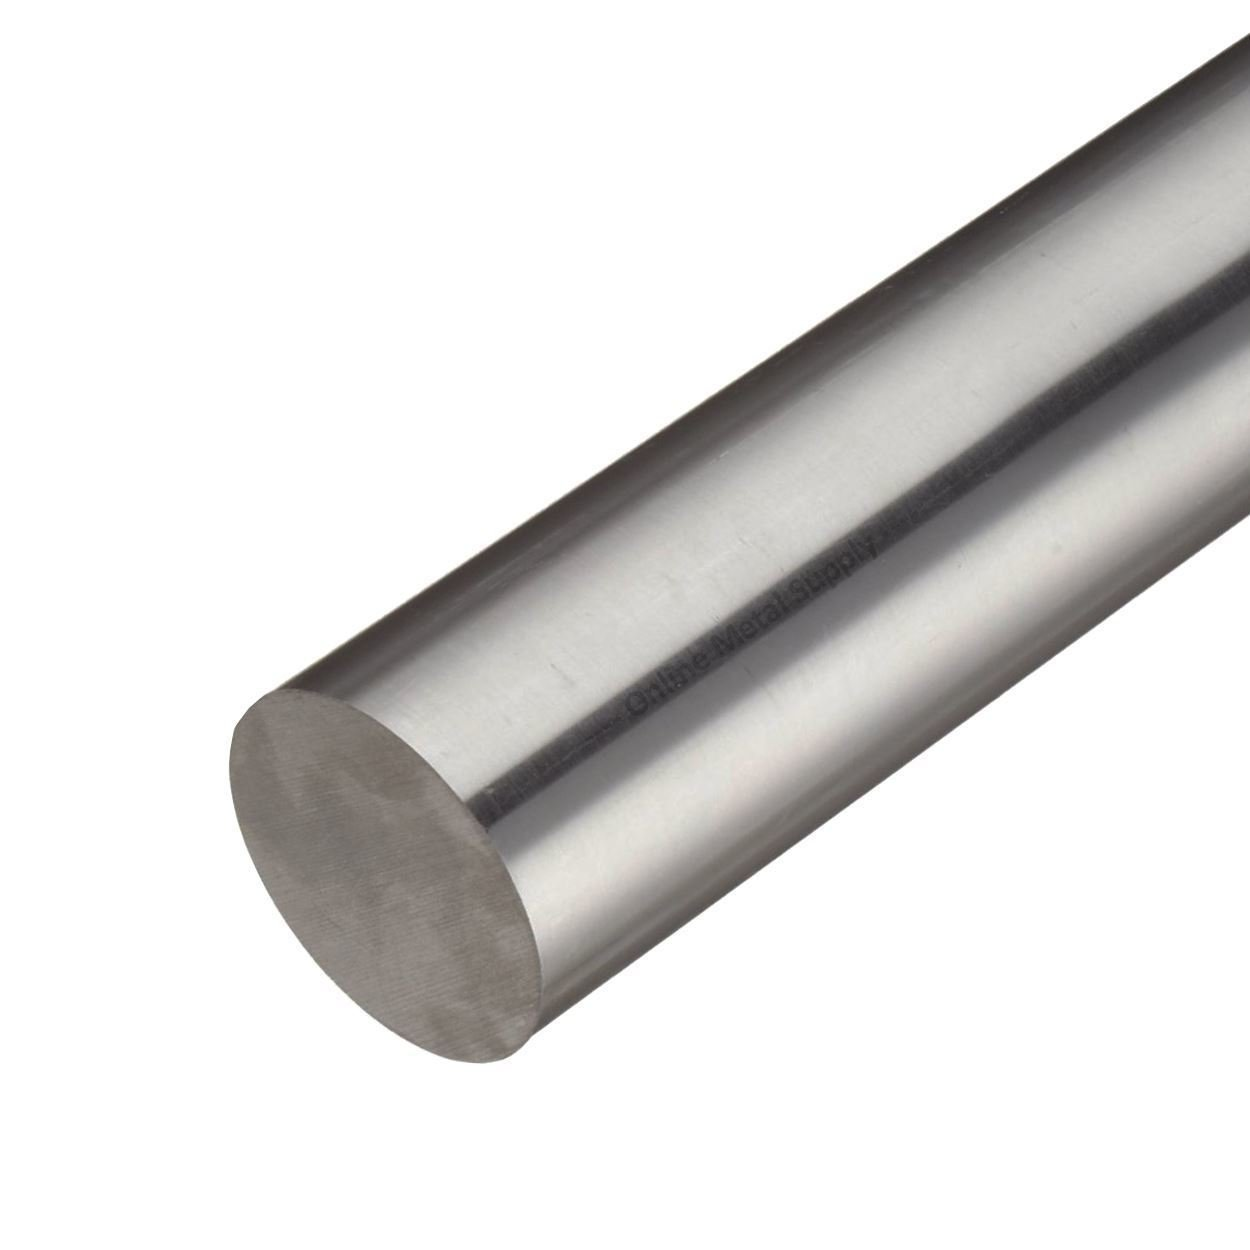 Online Metal Supply Alloy 718 Nickel Round Rod, 0.625 (5/8 inch) x 36 inches by Online Metal Supply